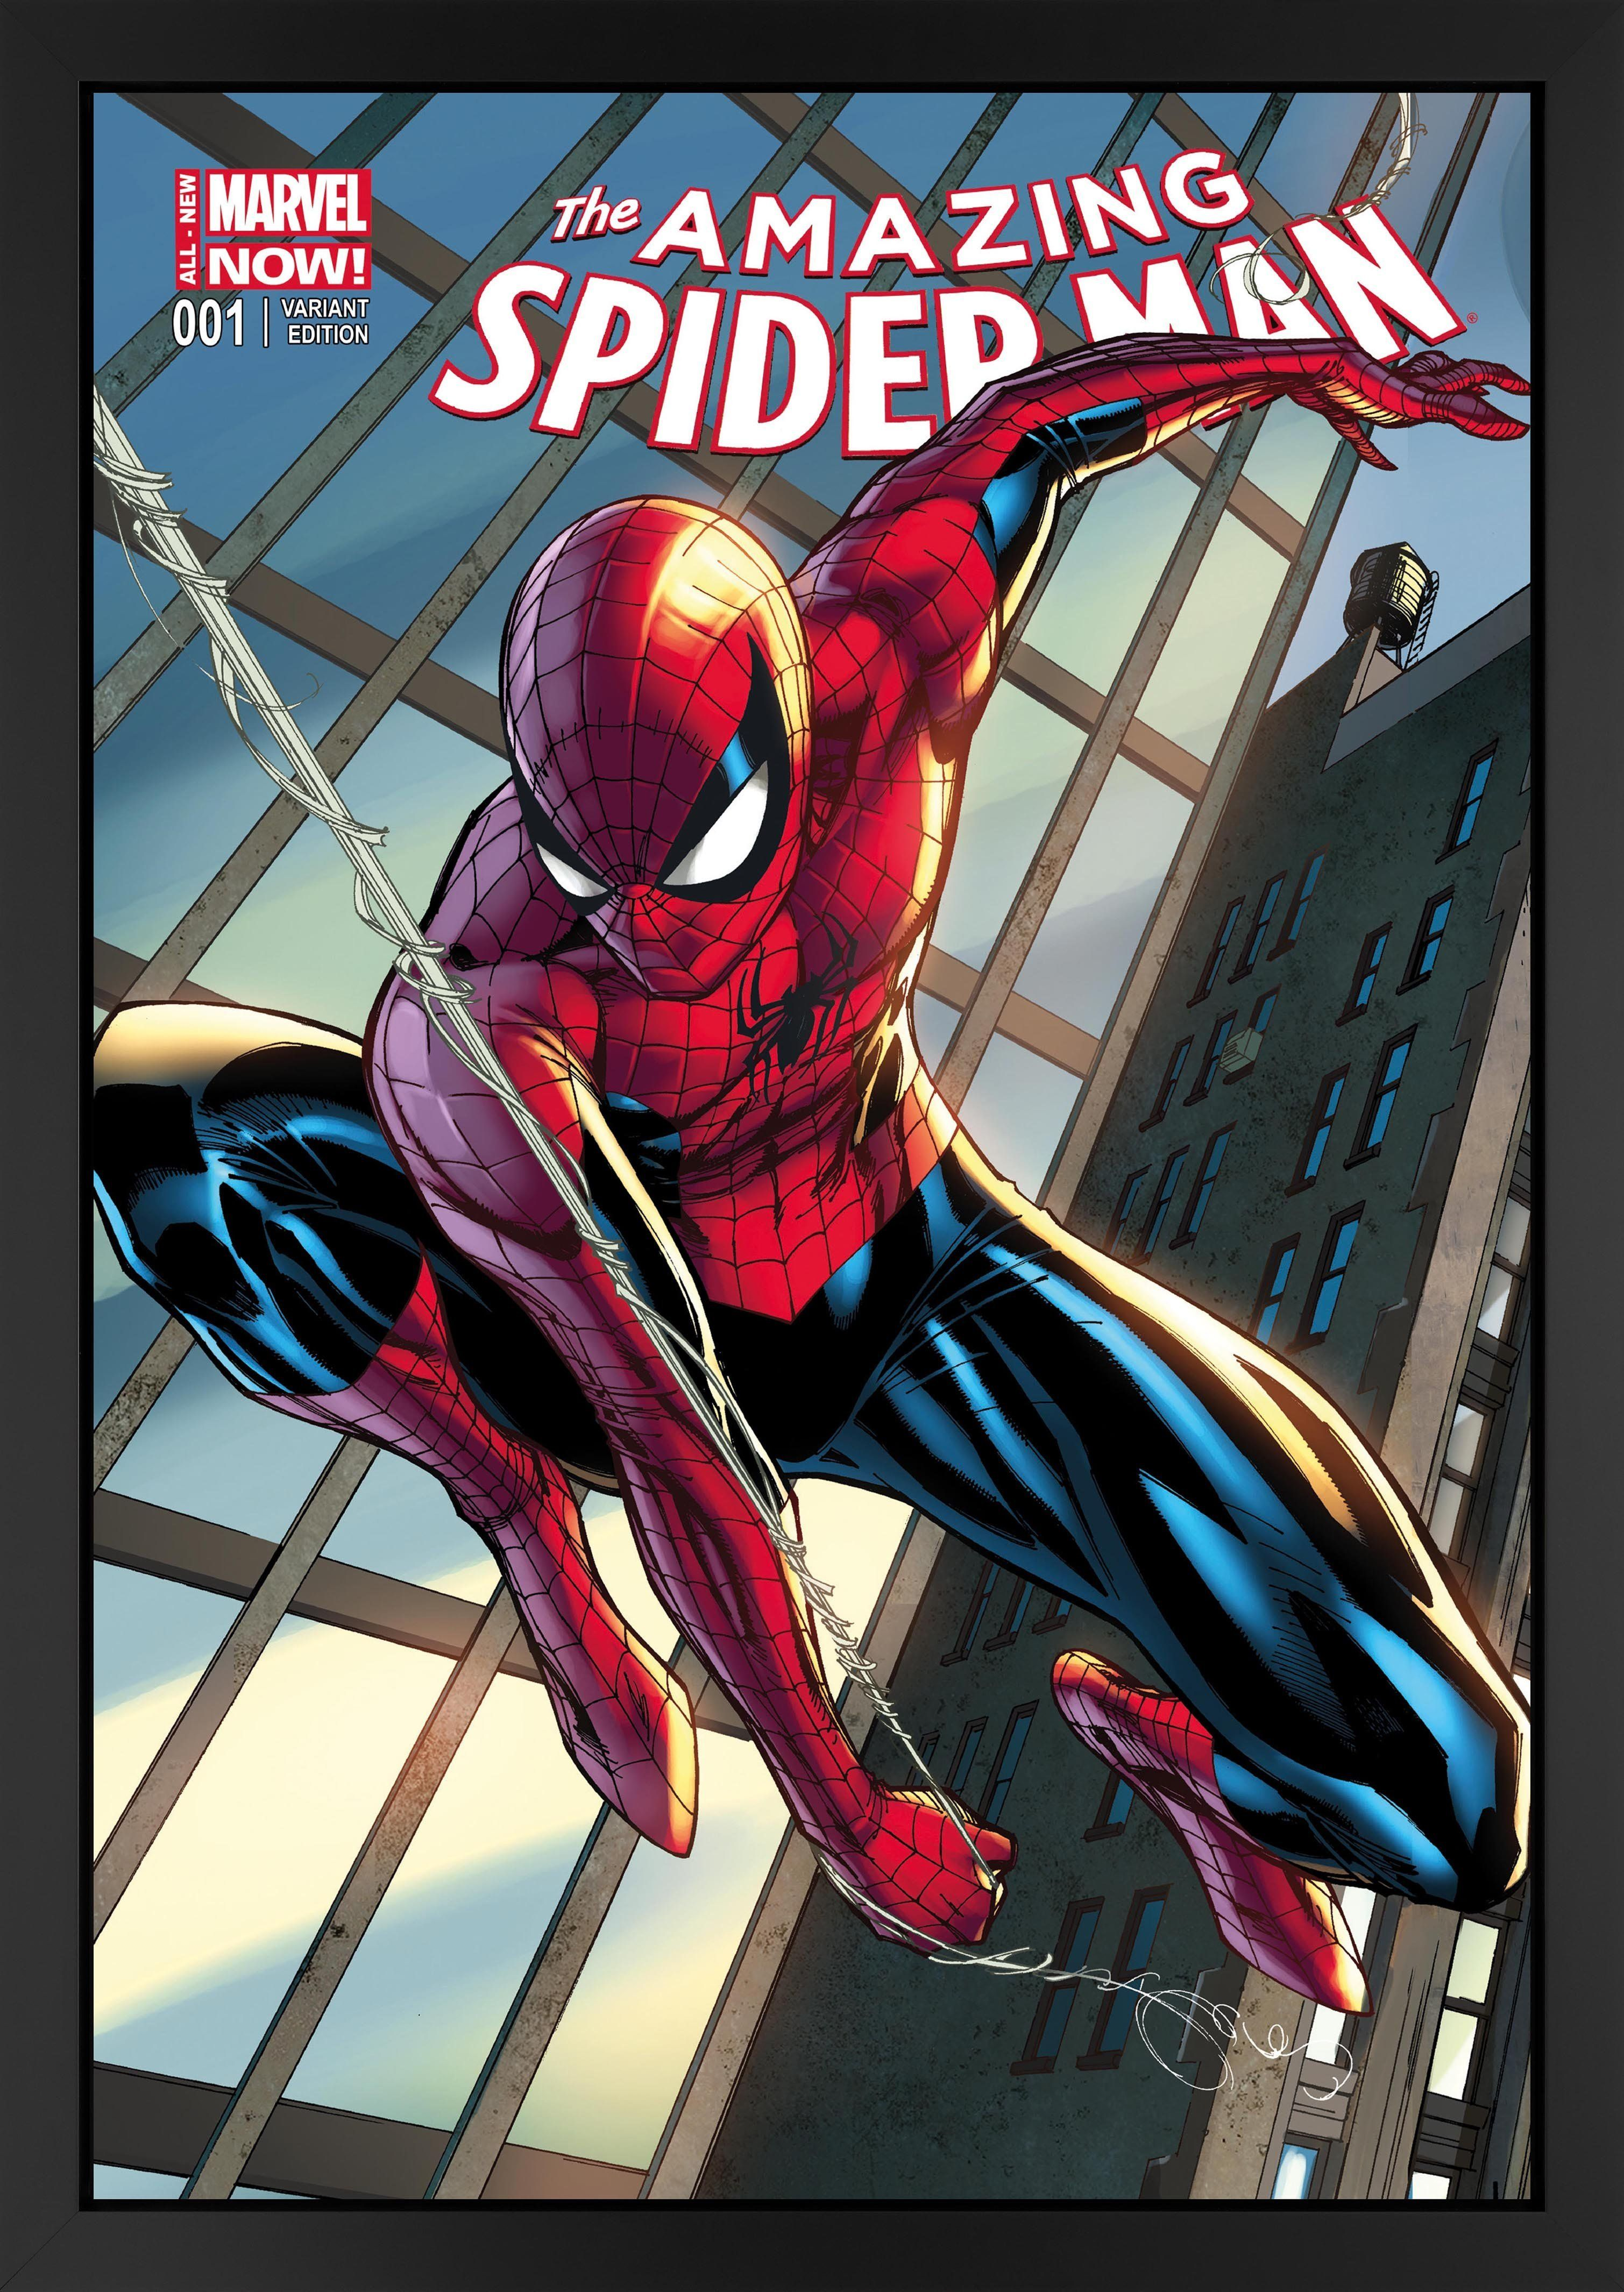 c74df0eb The Amazing Spider-Man #001 - 2017 Edition - SOLD OUT | Wyecliffe ...